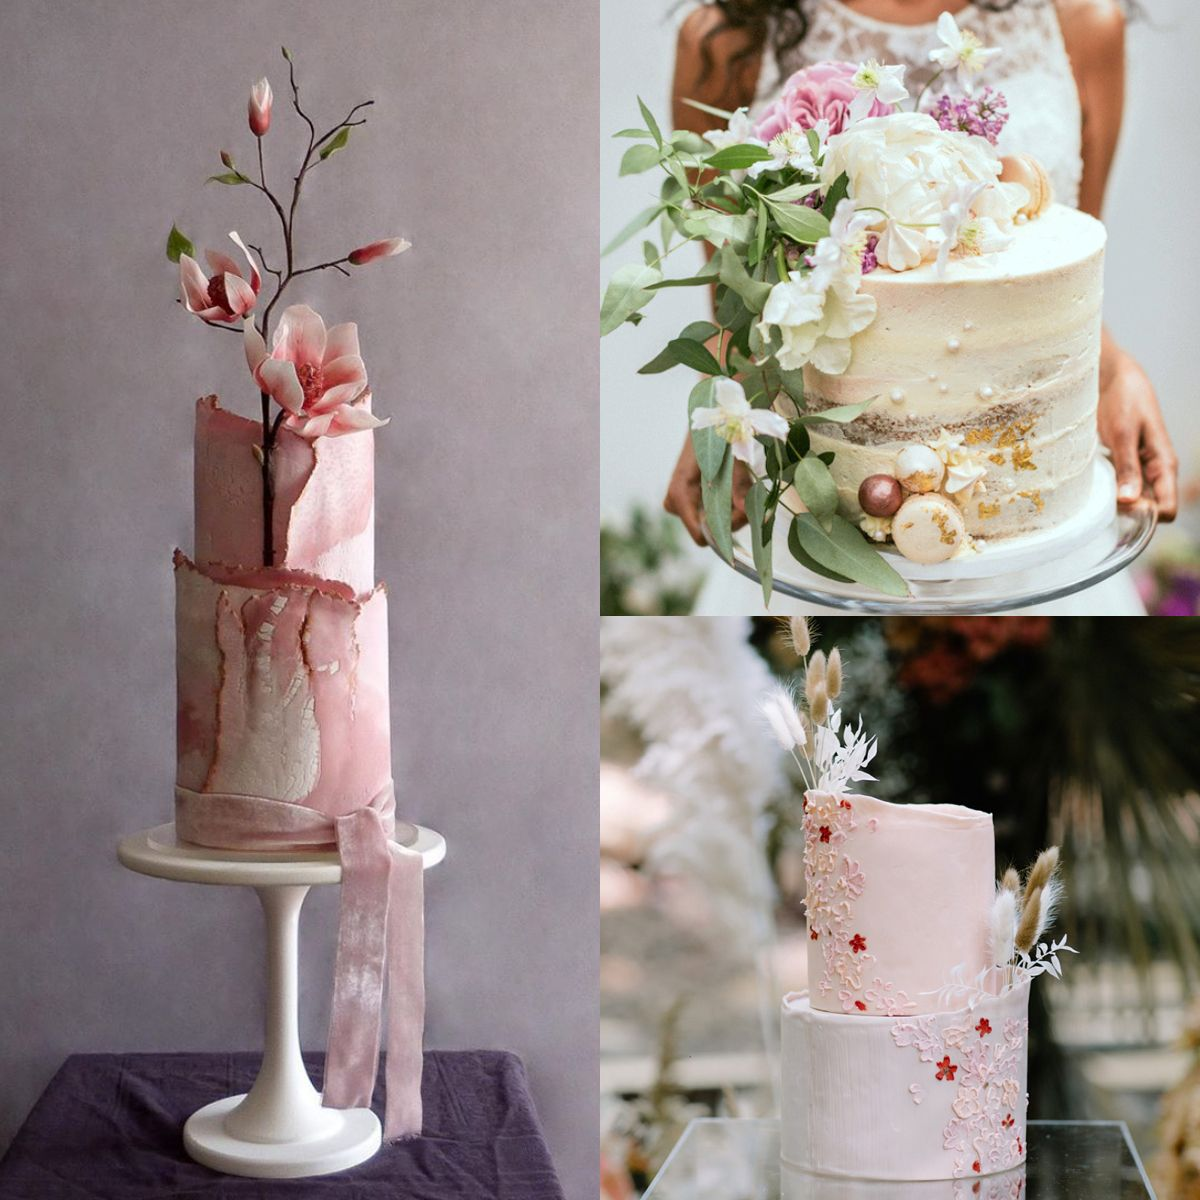 Wedding Trends 2020 Sustainability and Individuality